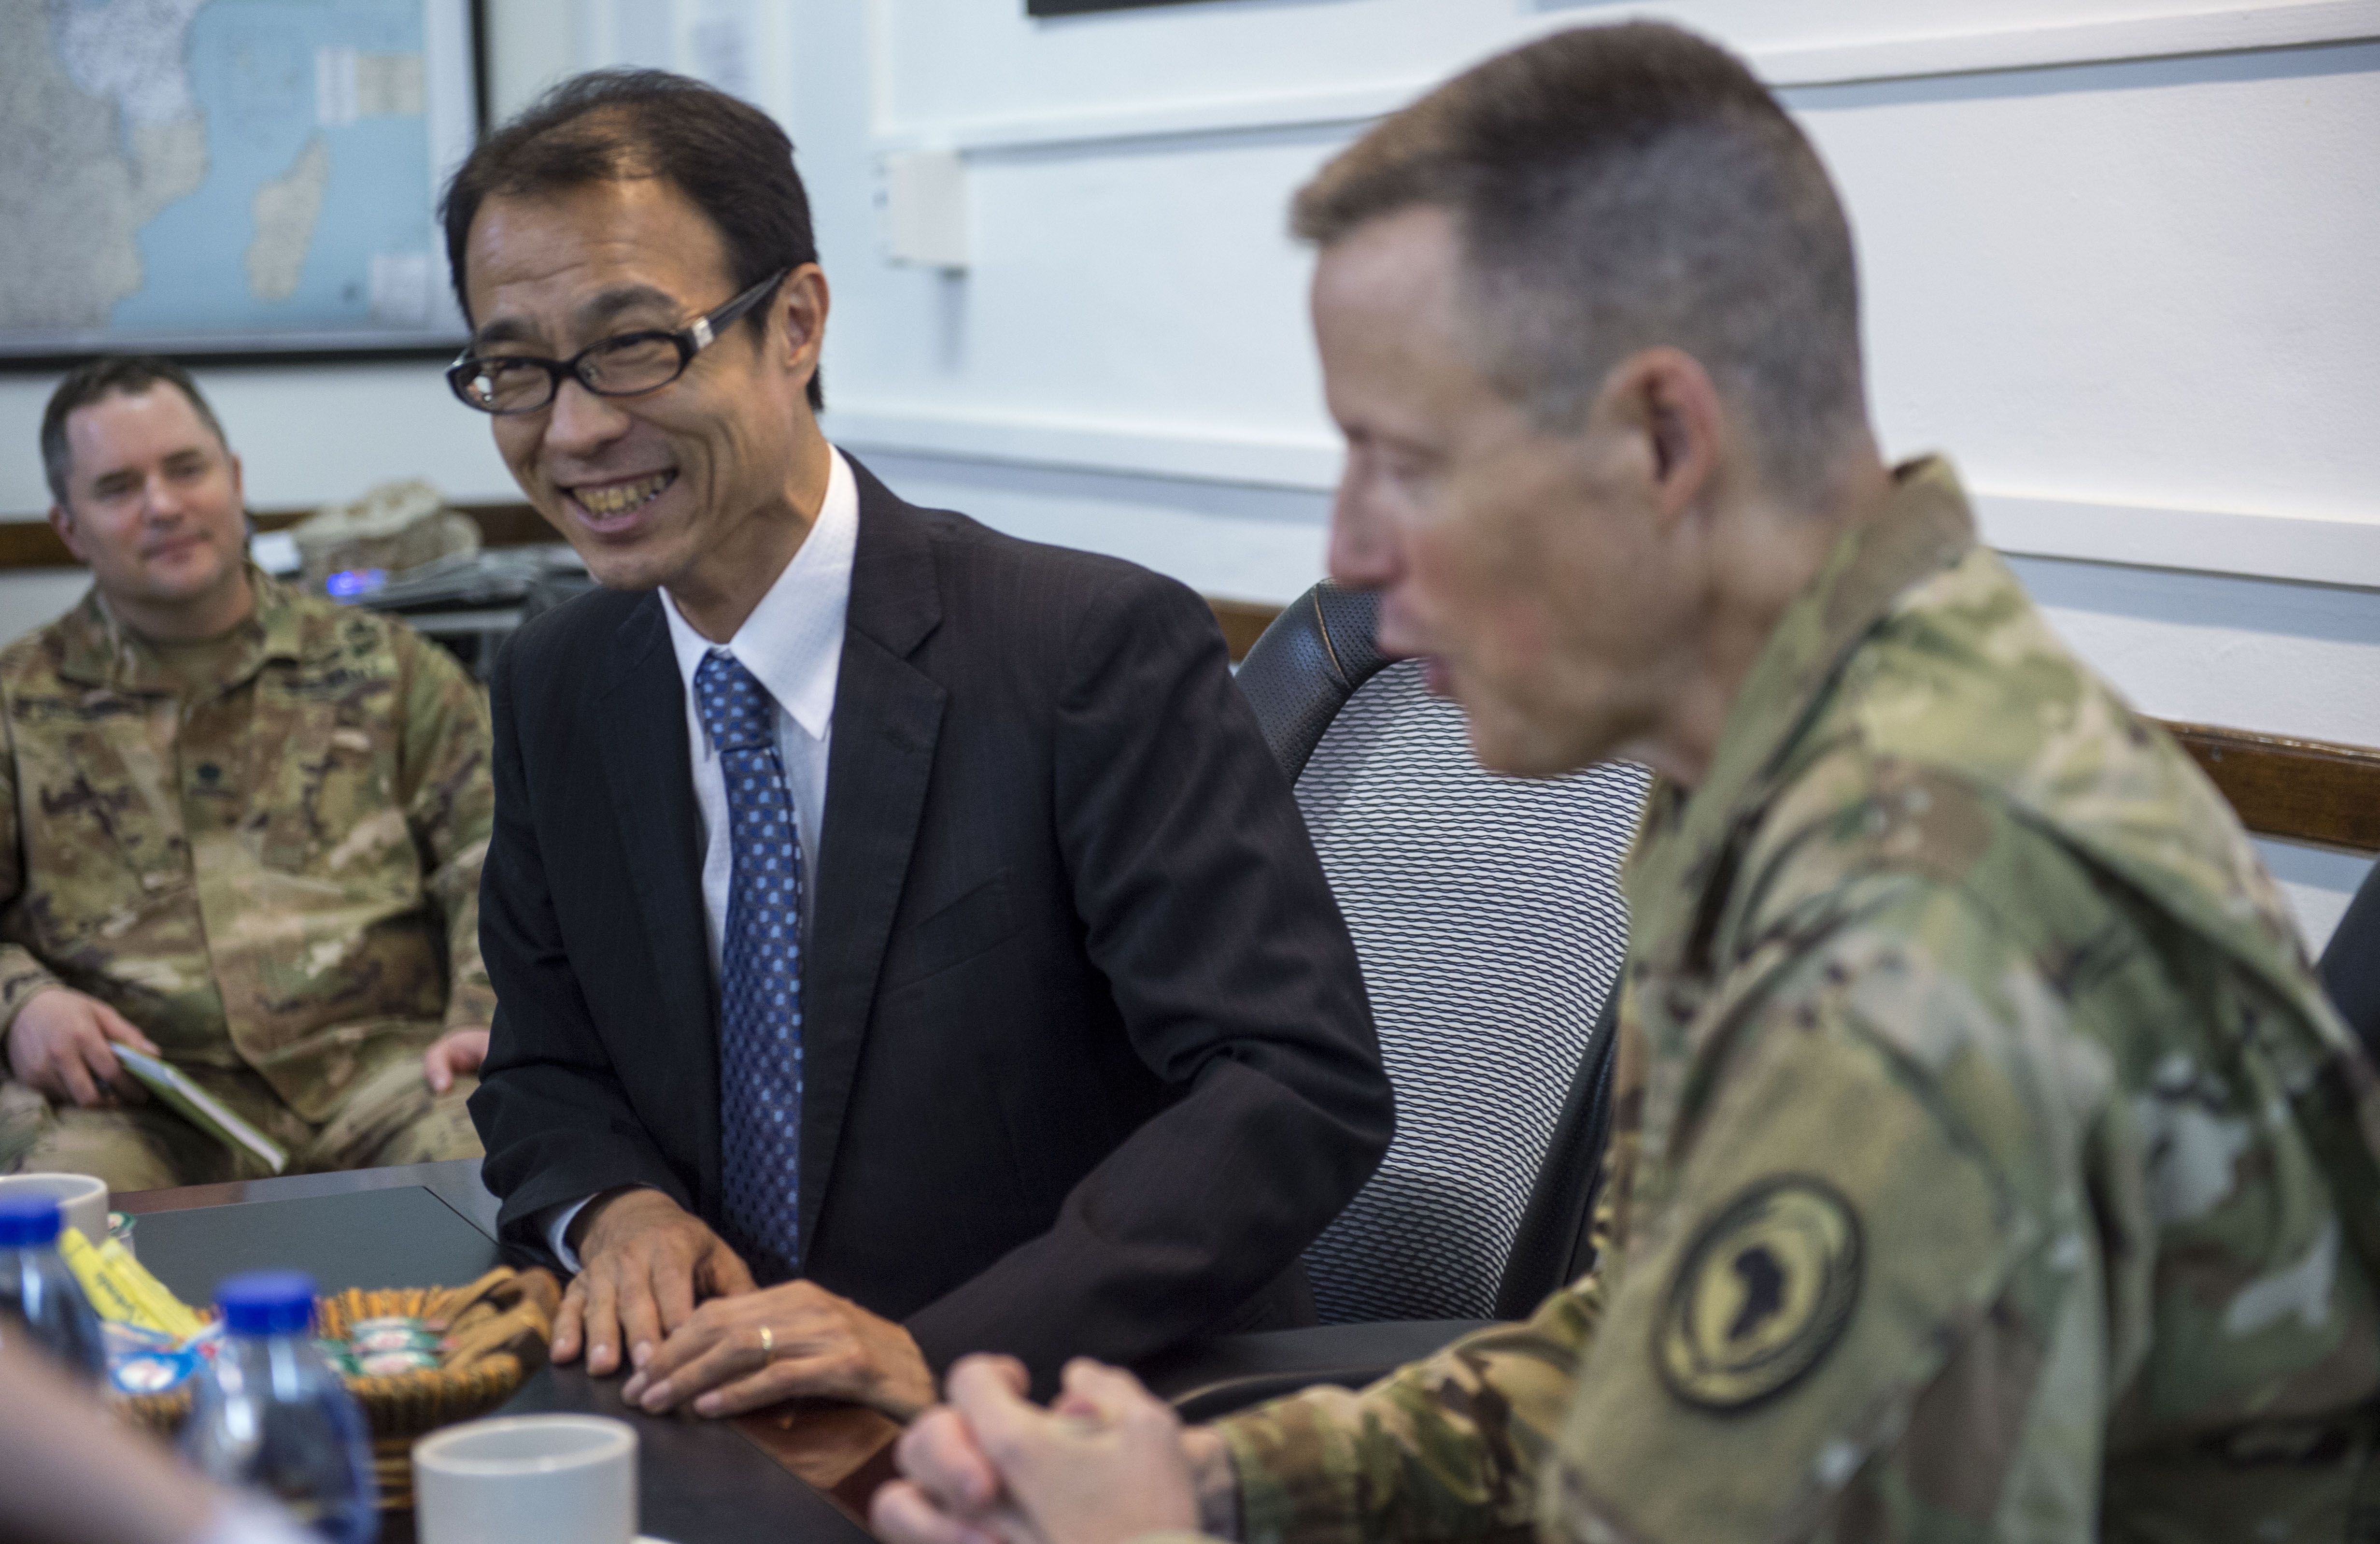 U.S. Army Brig. Gen. William Zana, Combined Joint Task Force - Horn of Africa deputy commanding general, hosted Koji Yotenani, Japanase Ambassador to Djibouti, and Larry André, U.S. Ambassador to Djibouti, during a visit to Camp Lemonnier, Djibouti, March 7, 2018. Yonetani and André were appointed as their countries' ambassadors to Djibouti in October and November 2017, respectively. CJTF-HOA works with U.S. and international partners to secure and stabilize the East African region against violent extremist organizations. (U.S. Air Force photo by Staff Sgt. Timothy Moore)